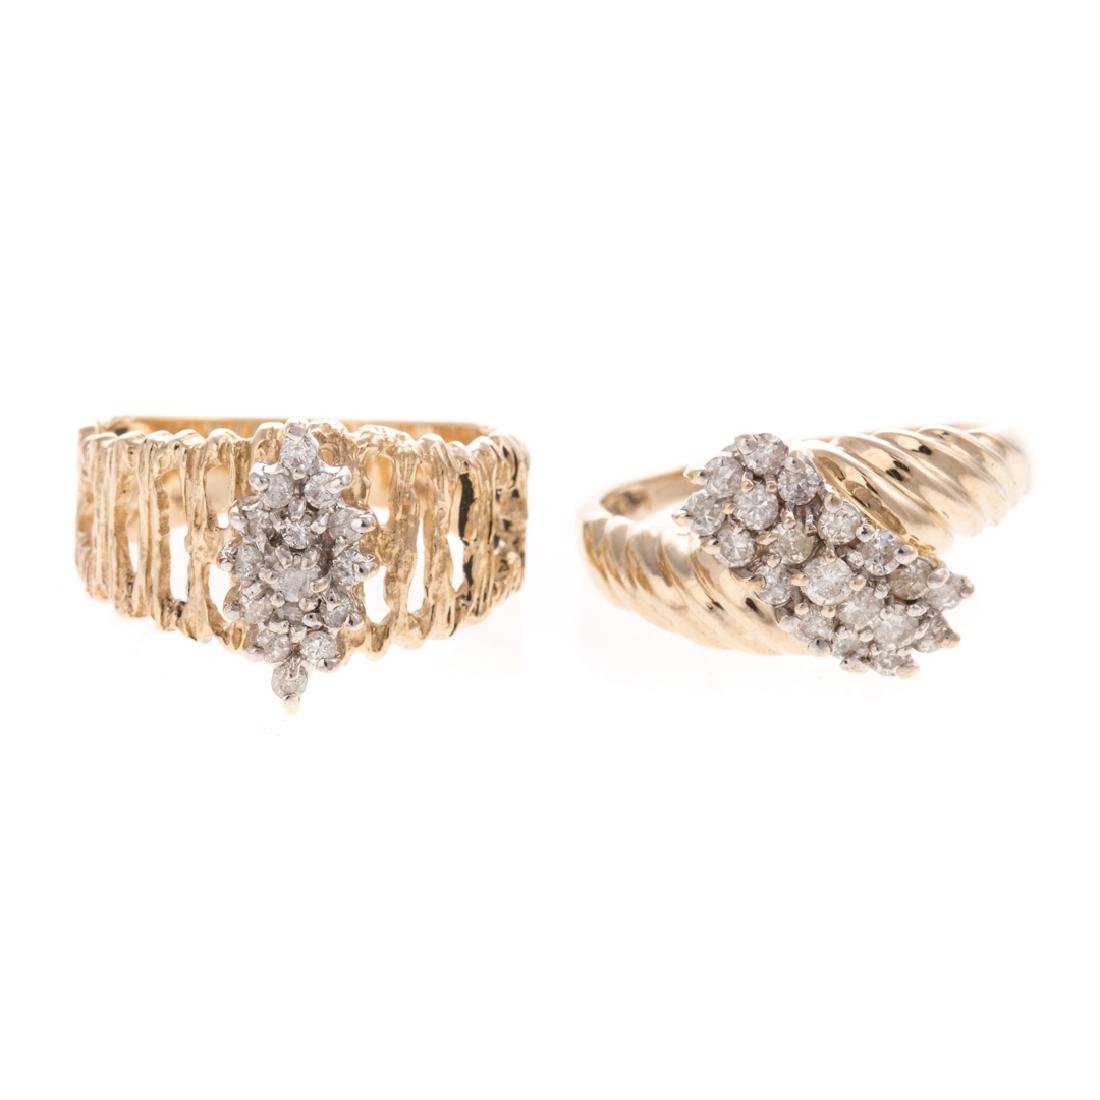 A Pair of Lady's 14K Diamond Cluster Rings